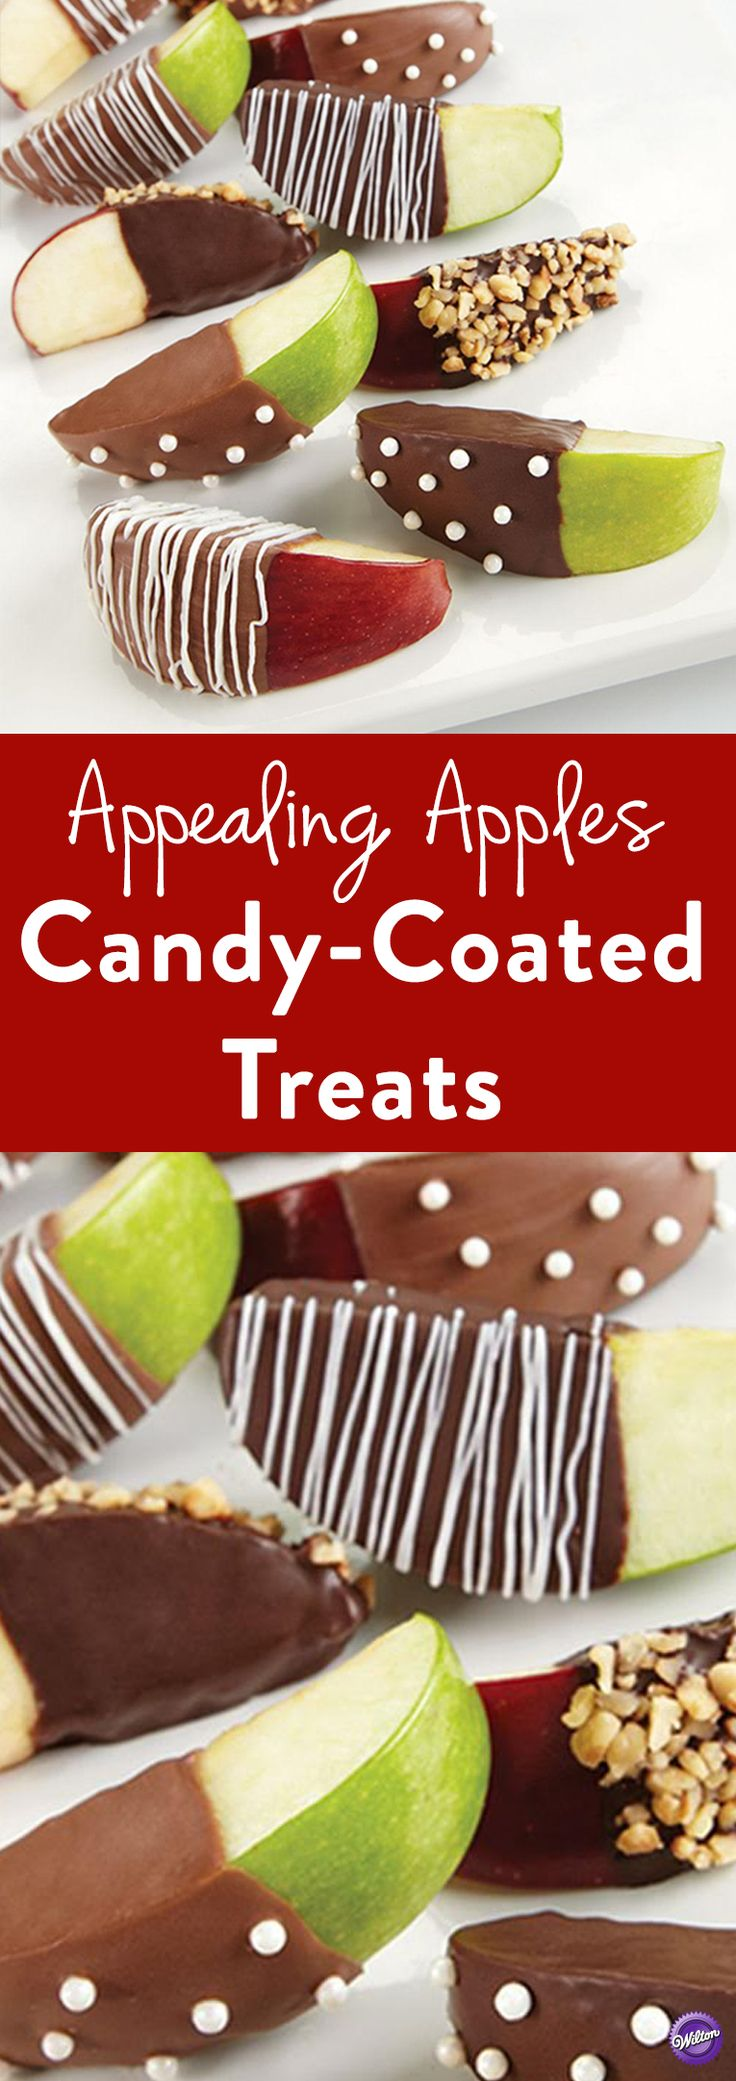 How to Make Candy-Coated Apples: Here's a tasty pairing: a sweet coating of Candy Melts candy over a tart apple slice. Serve in a variety of ways, dipped in crushed pecans, decorated with sugar pearls or drizzled with candy.